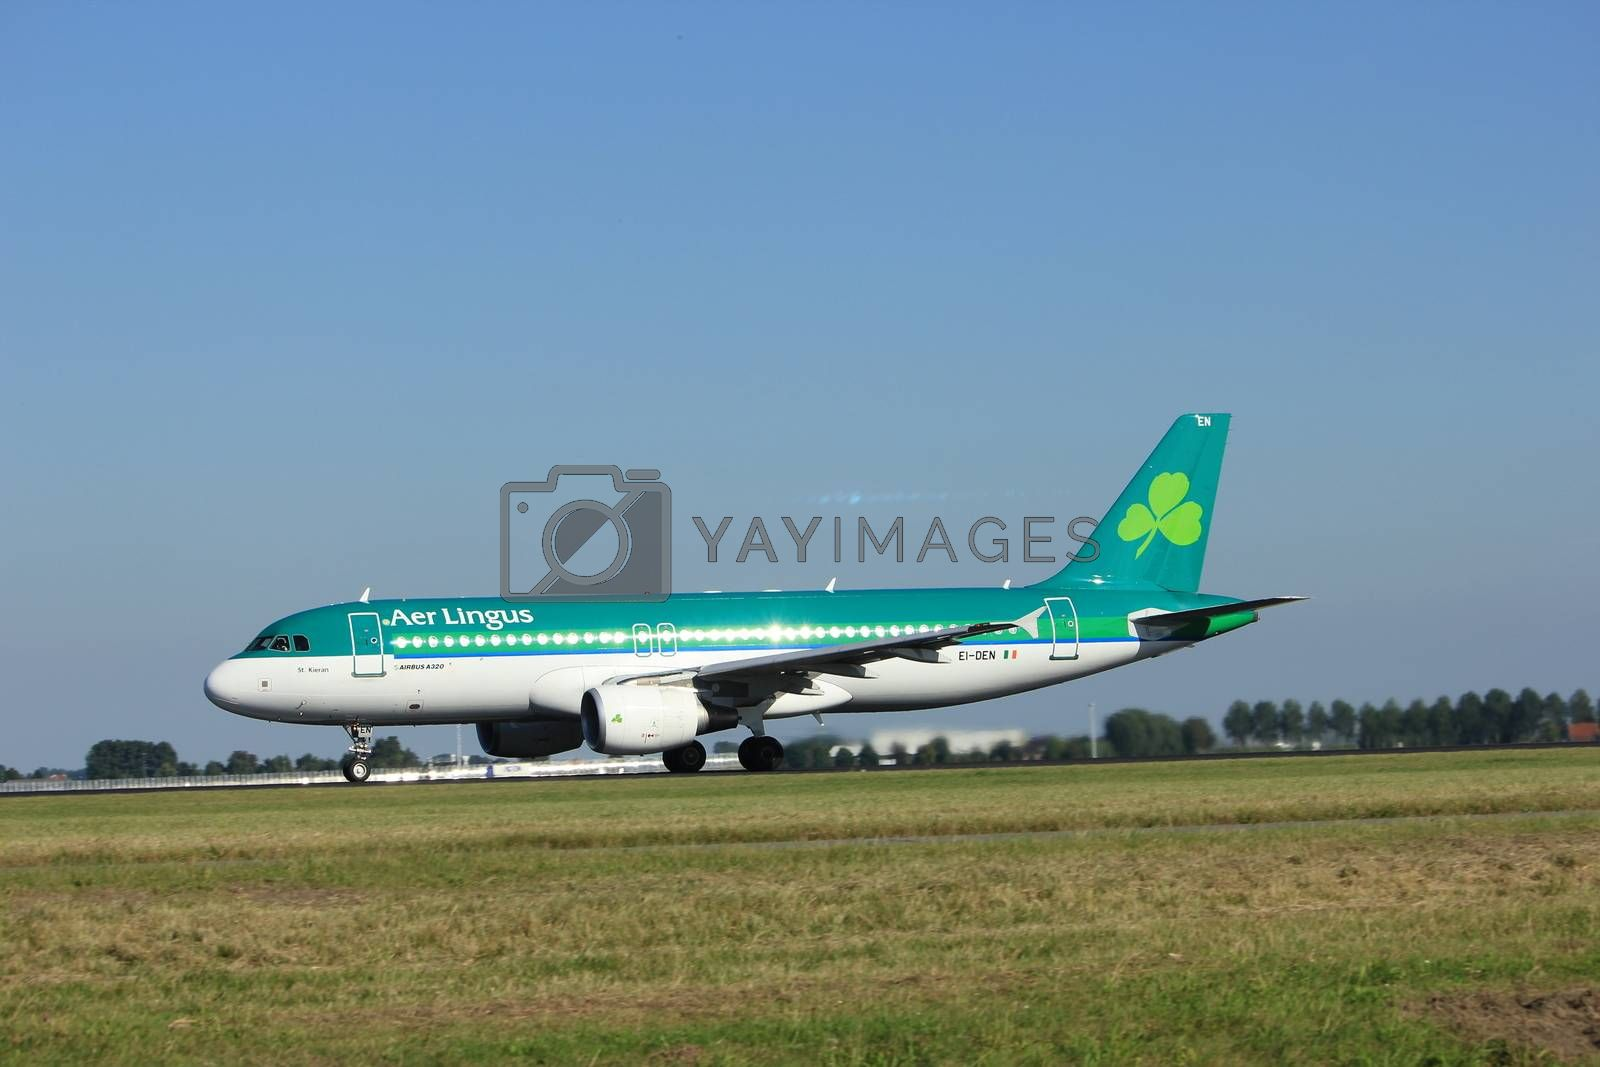 Amsterdam, the Netherlands  - August, 18th 2016: EI-DEN Aer Lingus Airbus A320-214, taking off from Polderbaan Runway Amsterdam Airport Schiphol